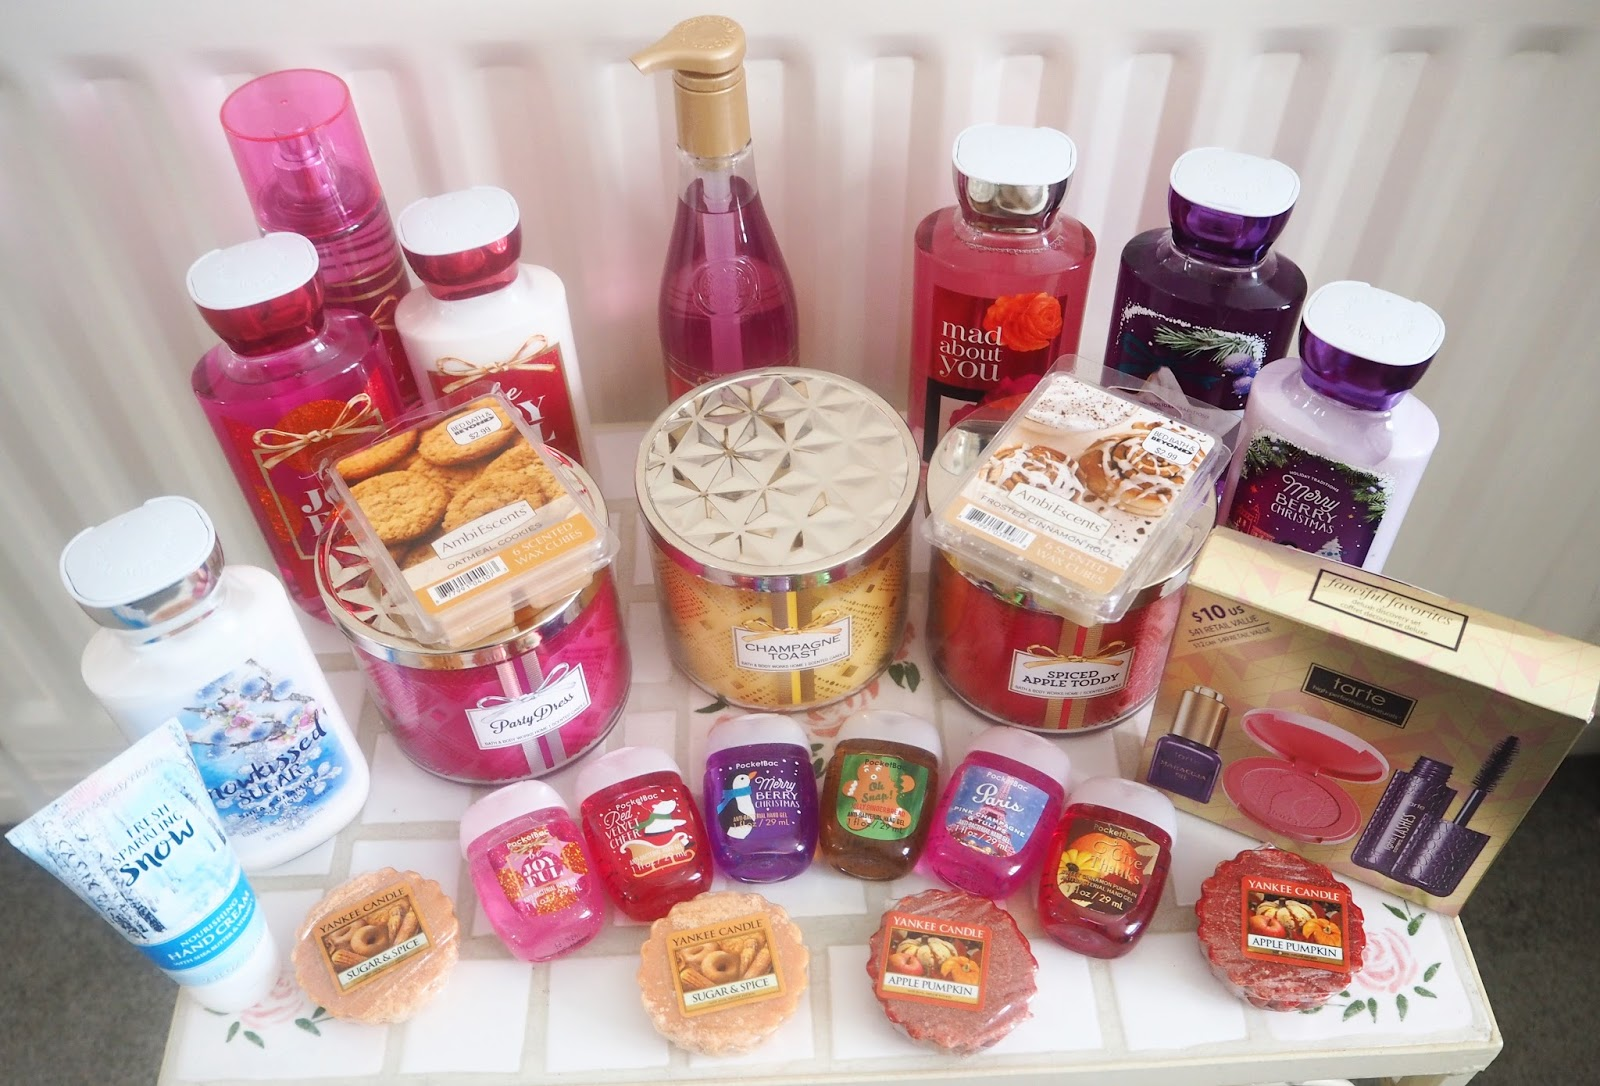 New York Haul: Bath & Bodyworks, Yankee Candle, Tarte Cosmetics | Katie Kirk Loves